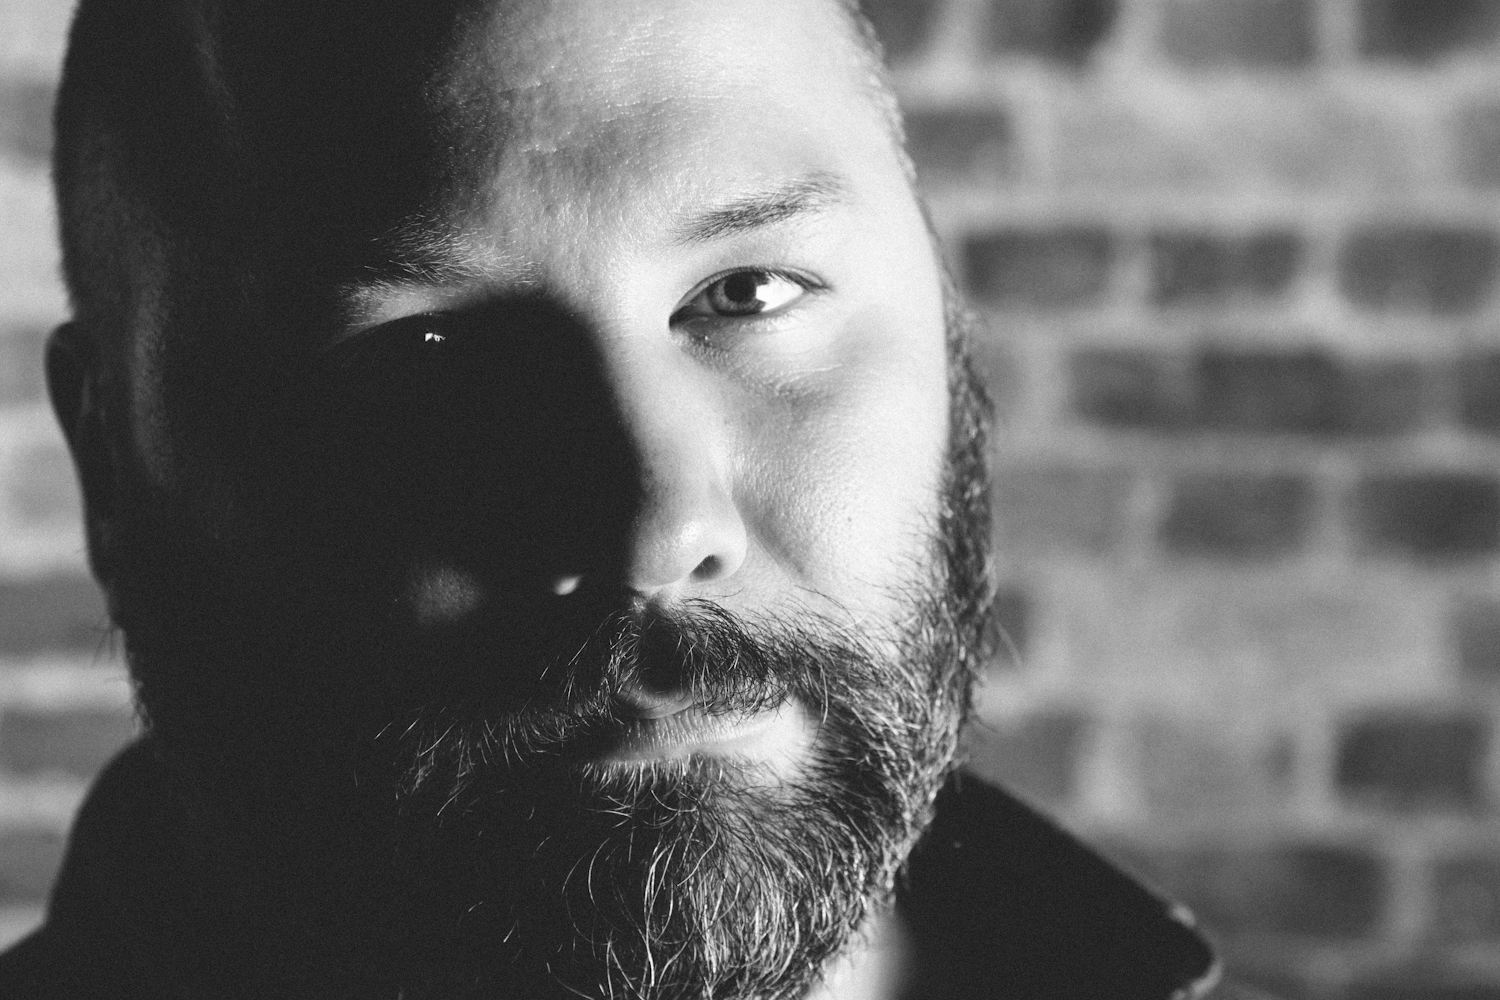 Catching up with Prosumer